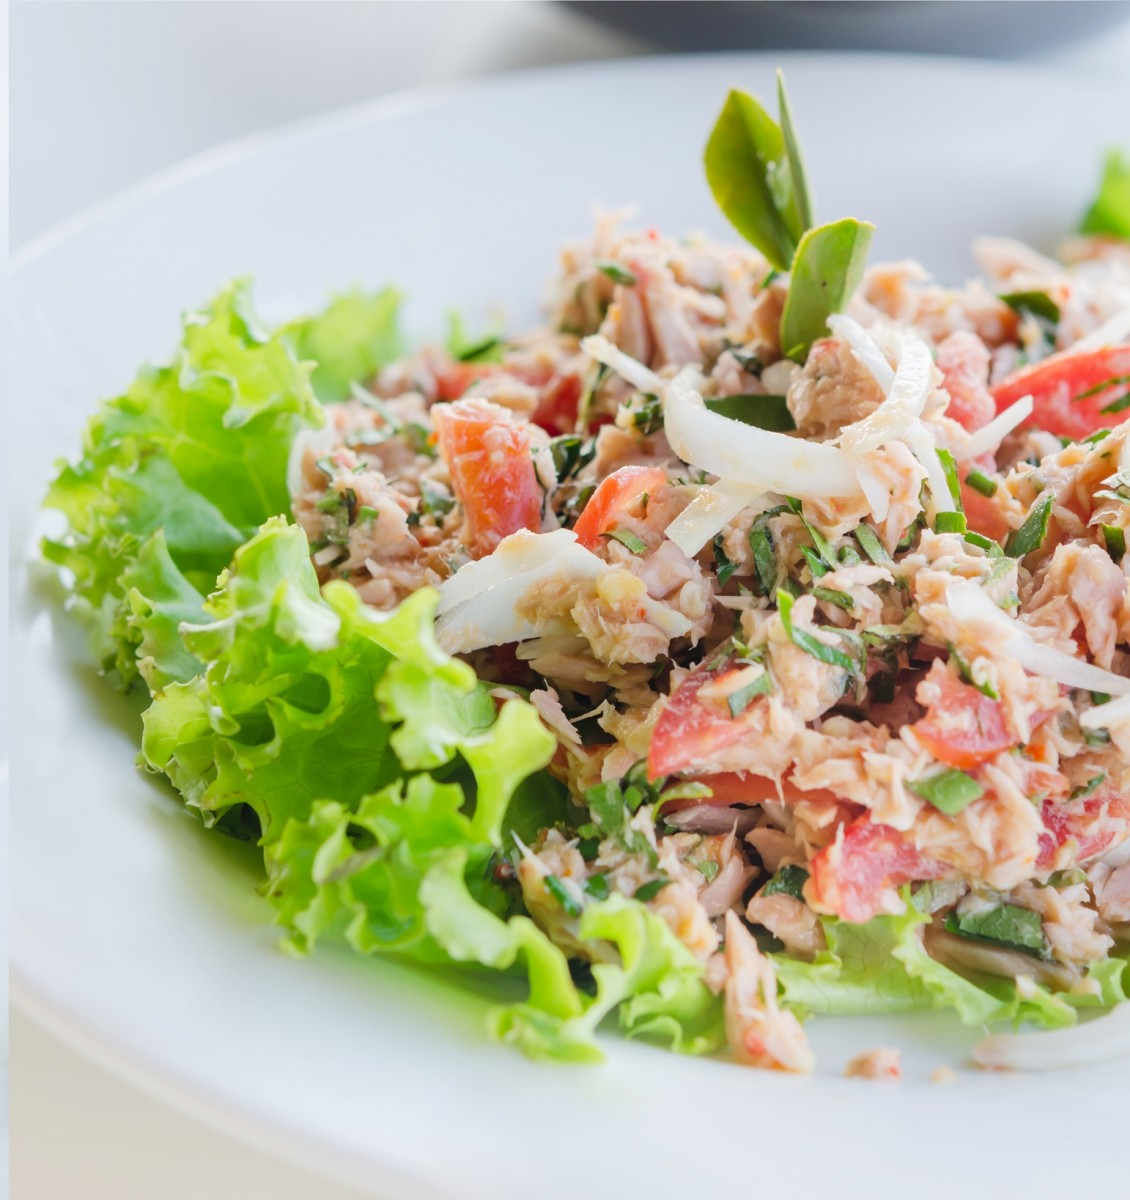 ISRAELI SPICY TUNA SALAD